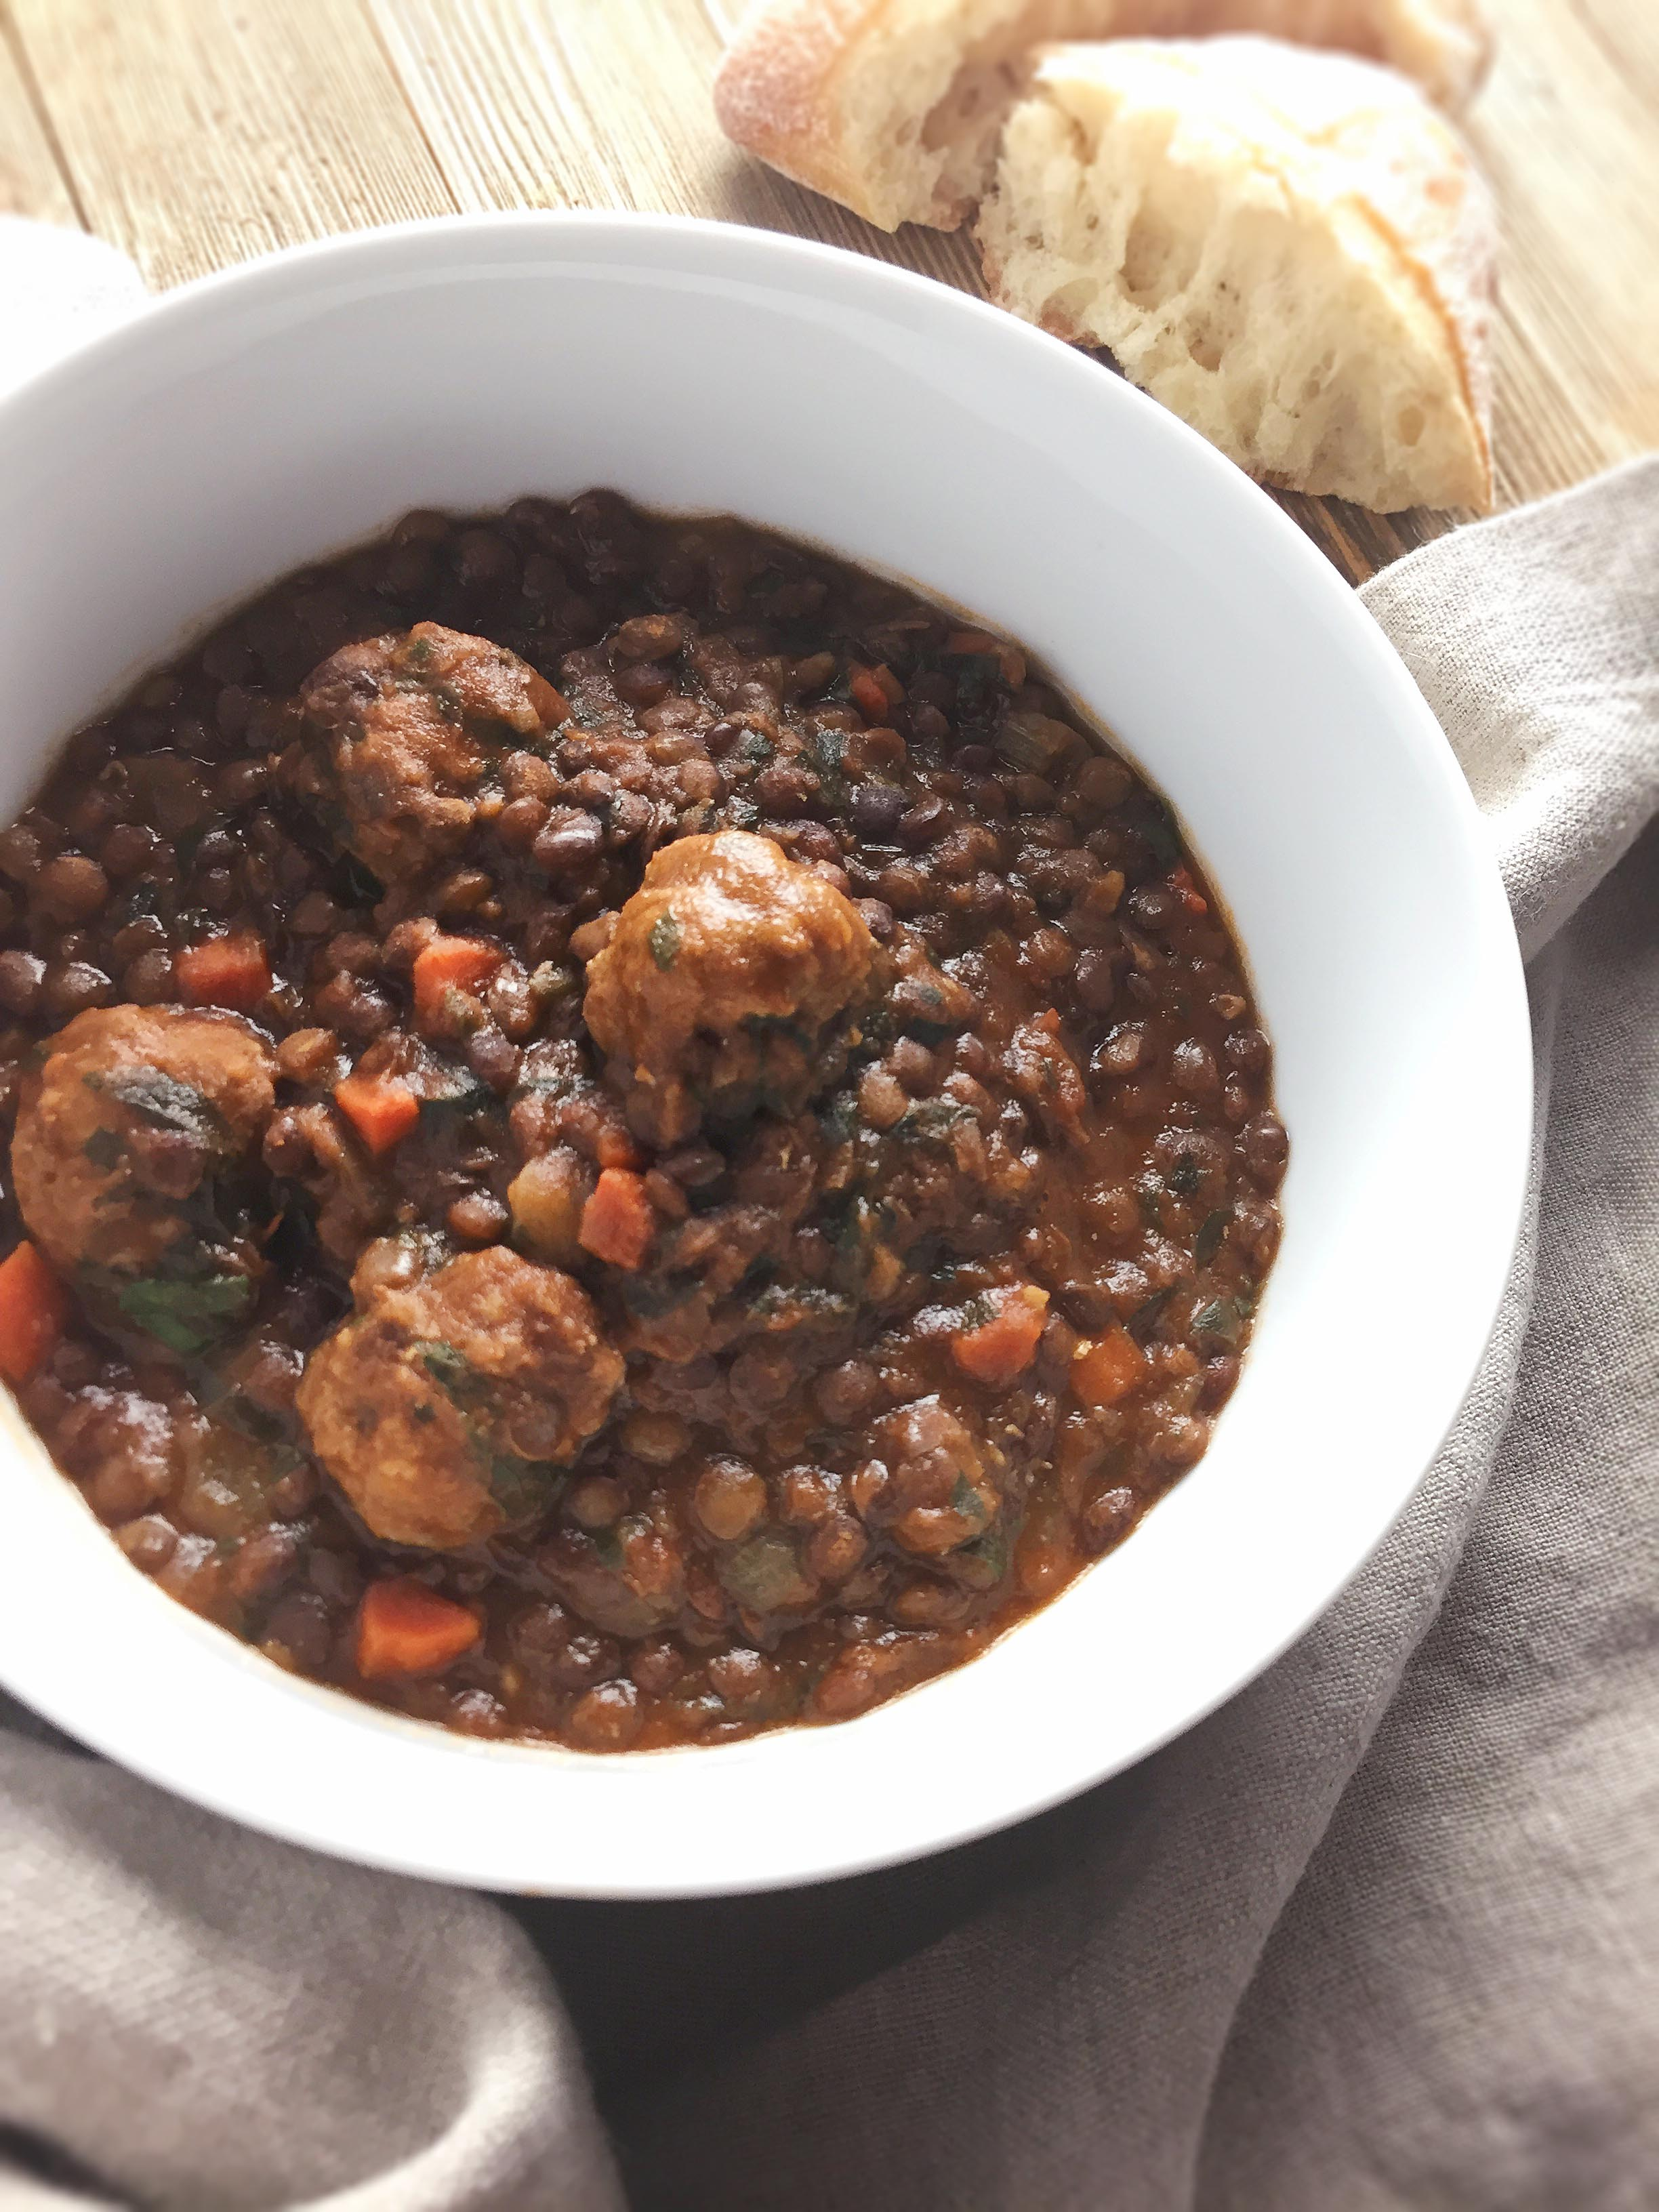 lentil_soup_with_sauage_meatballs21.jpg